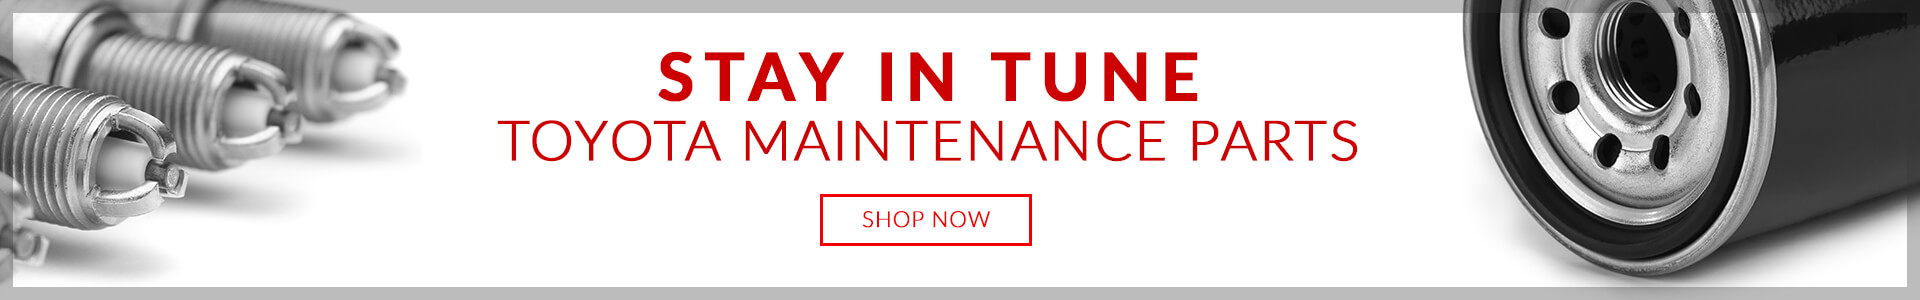 Toyota Mainetance Parts